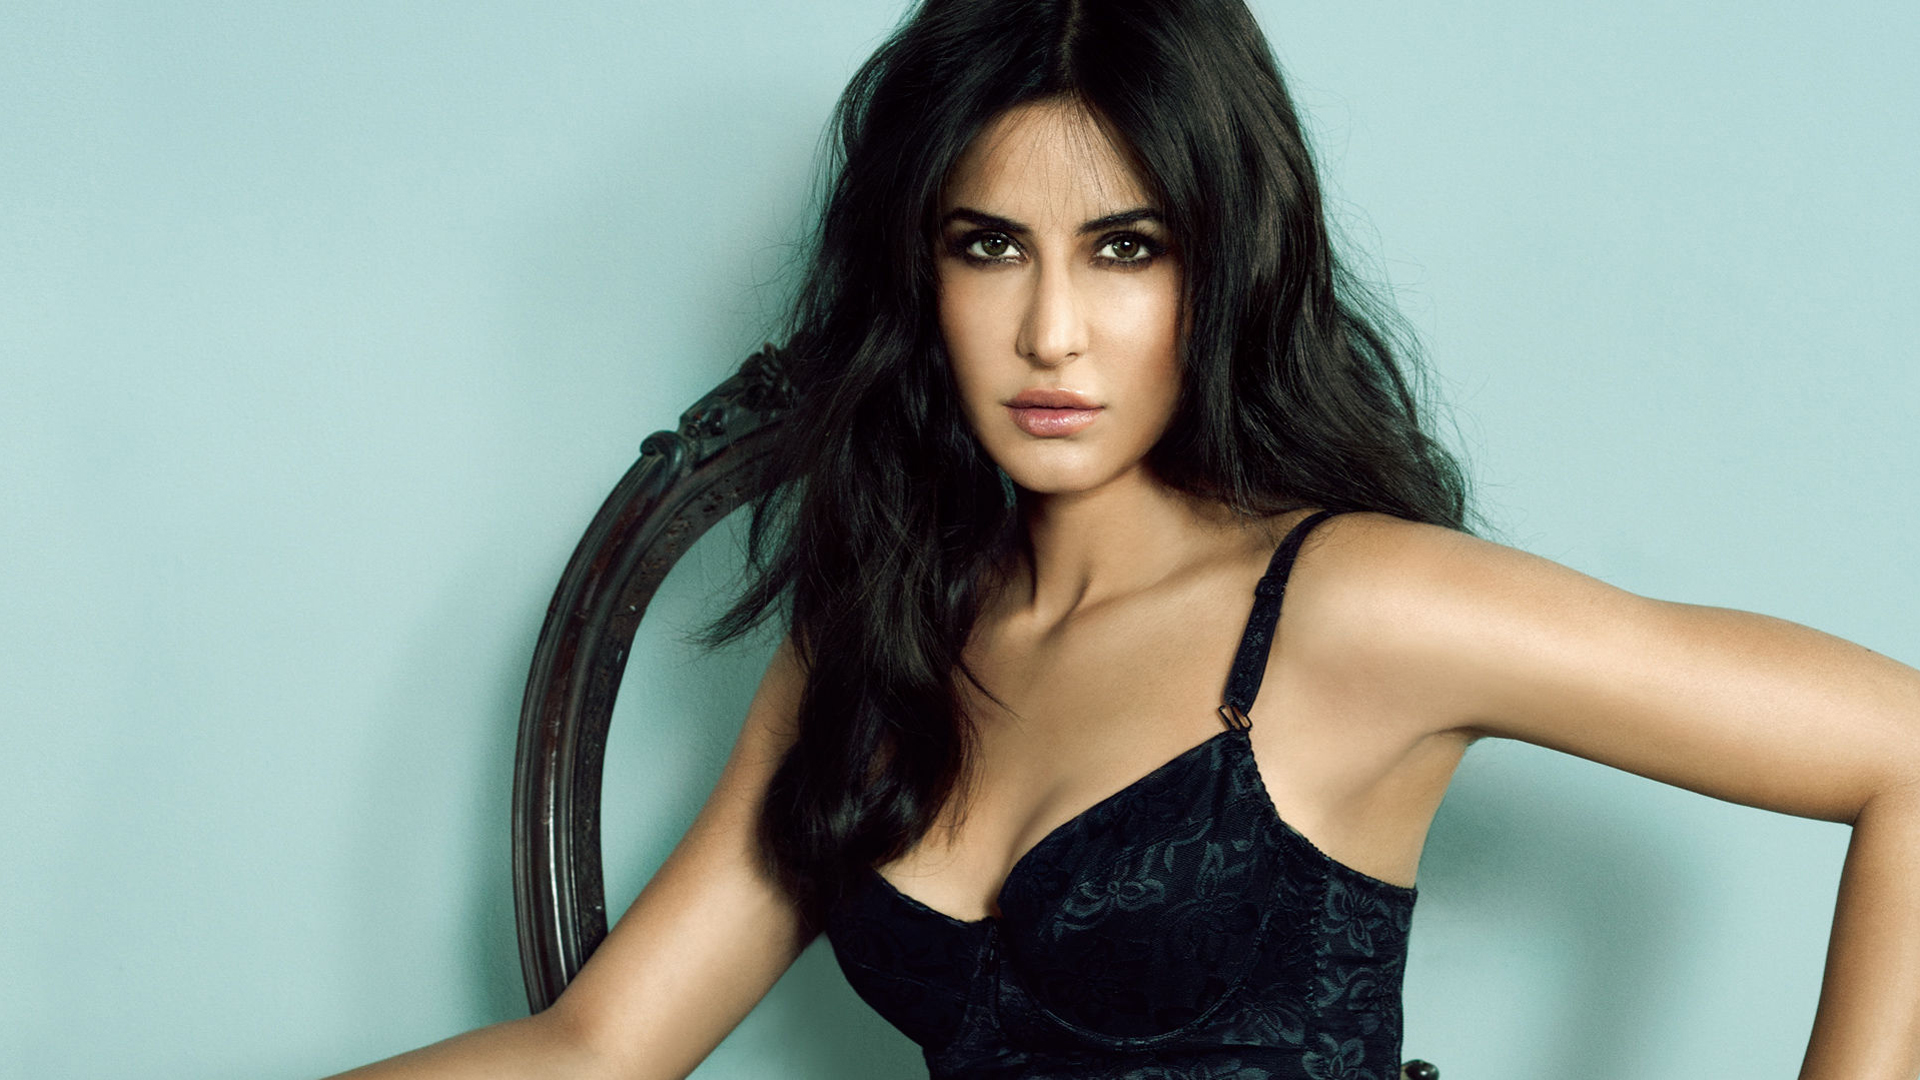 katrina kaif hot hd wallpapers, sizzling unseen pictures 1920x1080